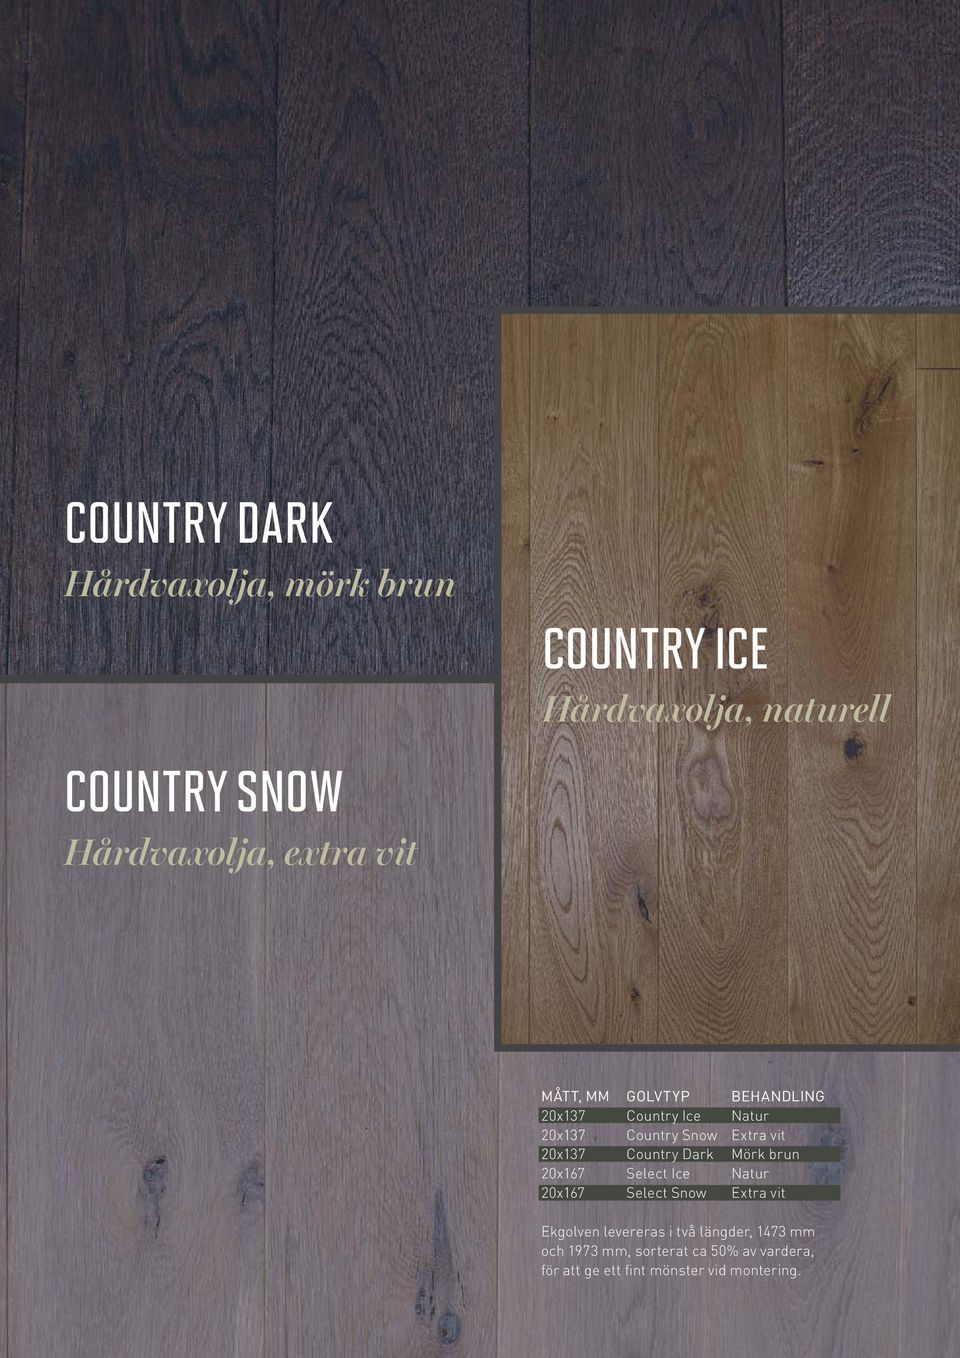 Country Dark Mörk brun 20x167 Select Ice Natur 20x167 Select Snow Extra vit Ekgolven levereras i